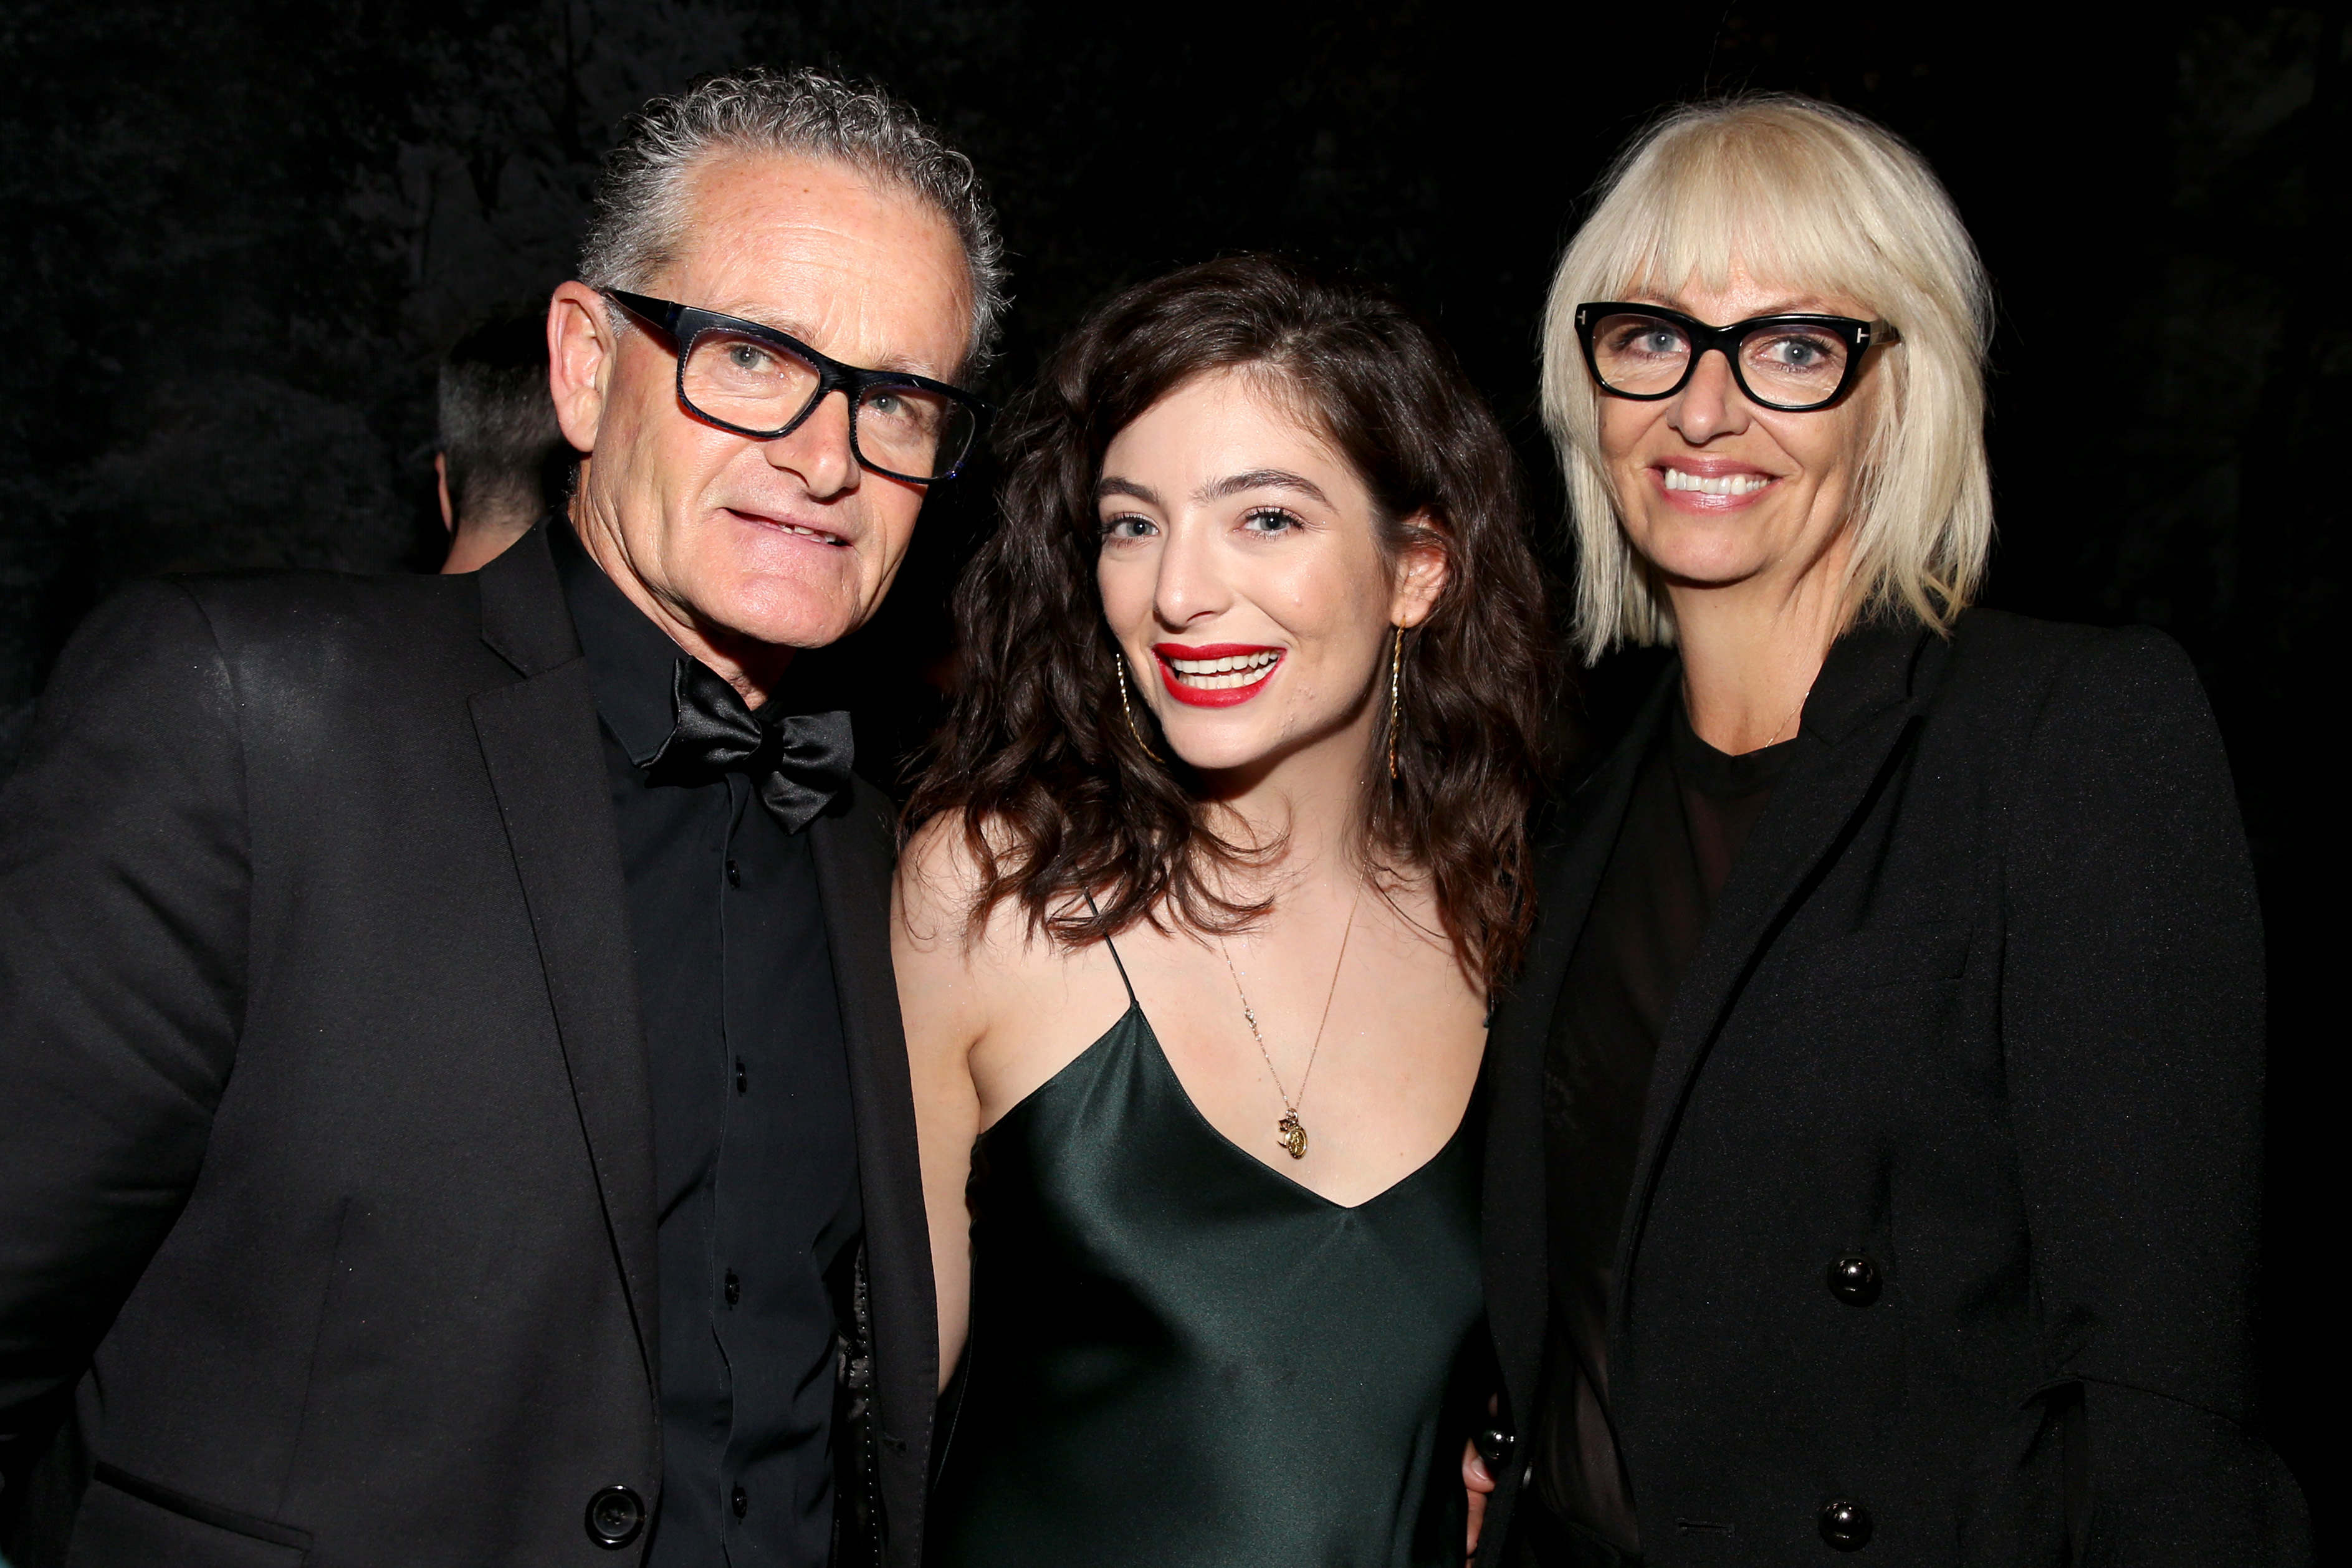 Lorde and her parents, Vic O'Conner and Sonja Yelich, attend Universal Music Group's Grammys afterparty in New York City on Jan. 28, 2018.